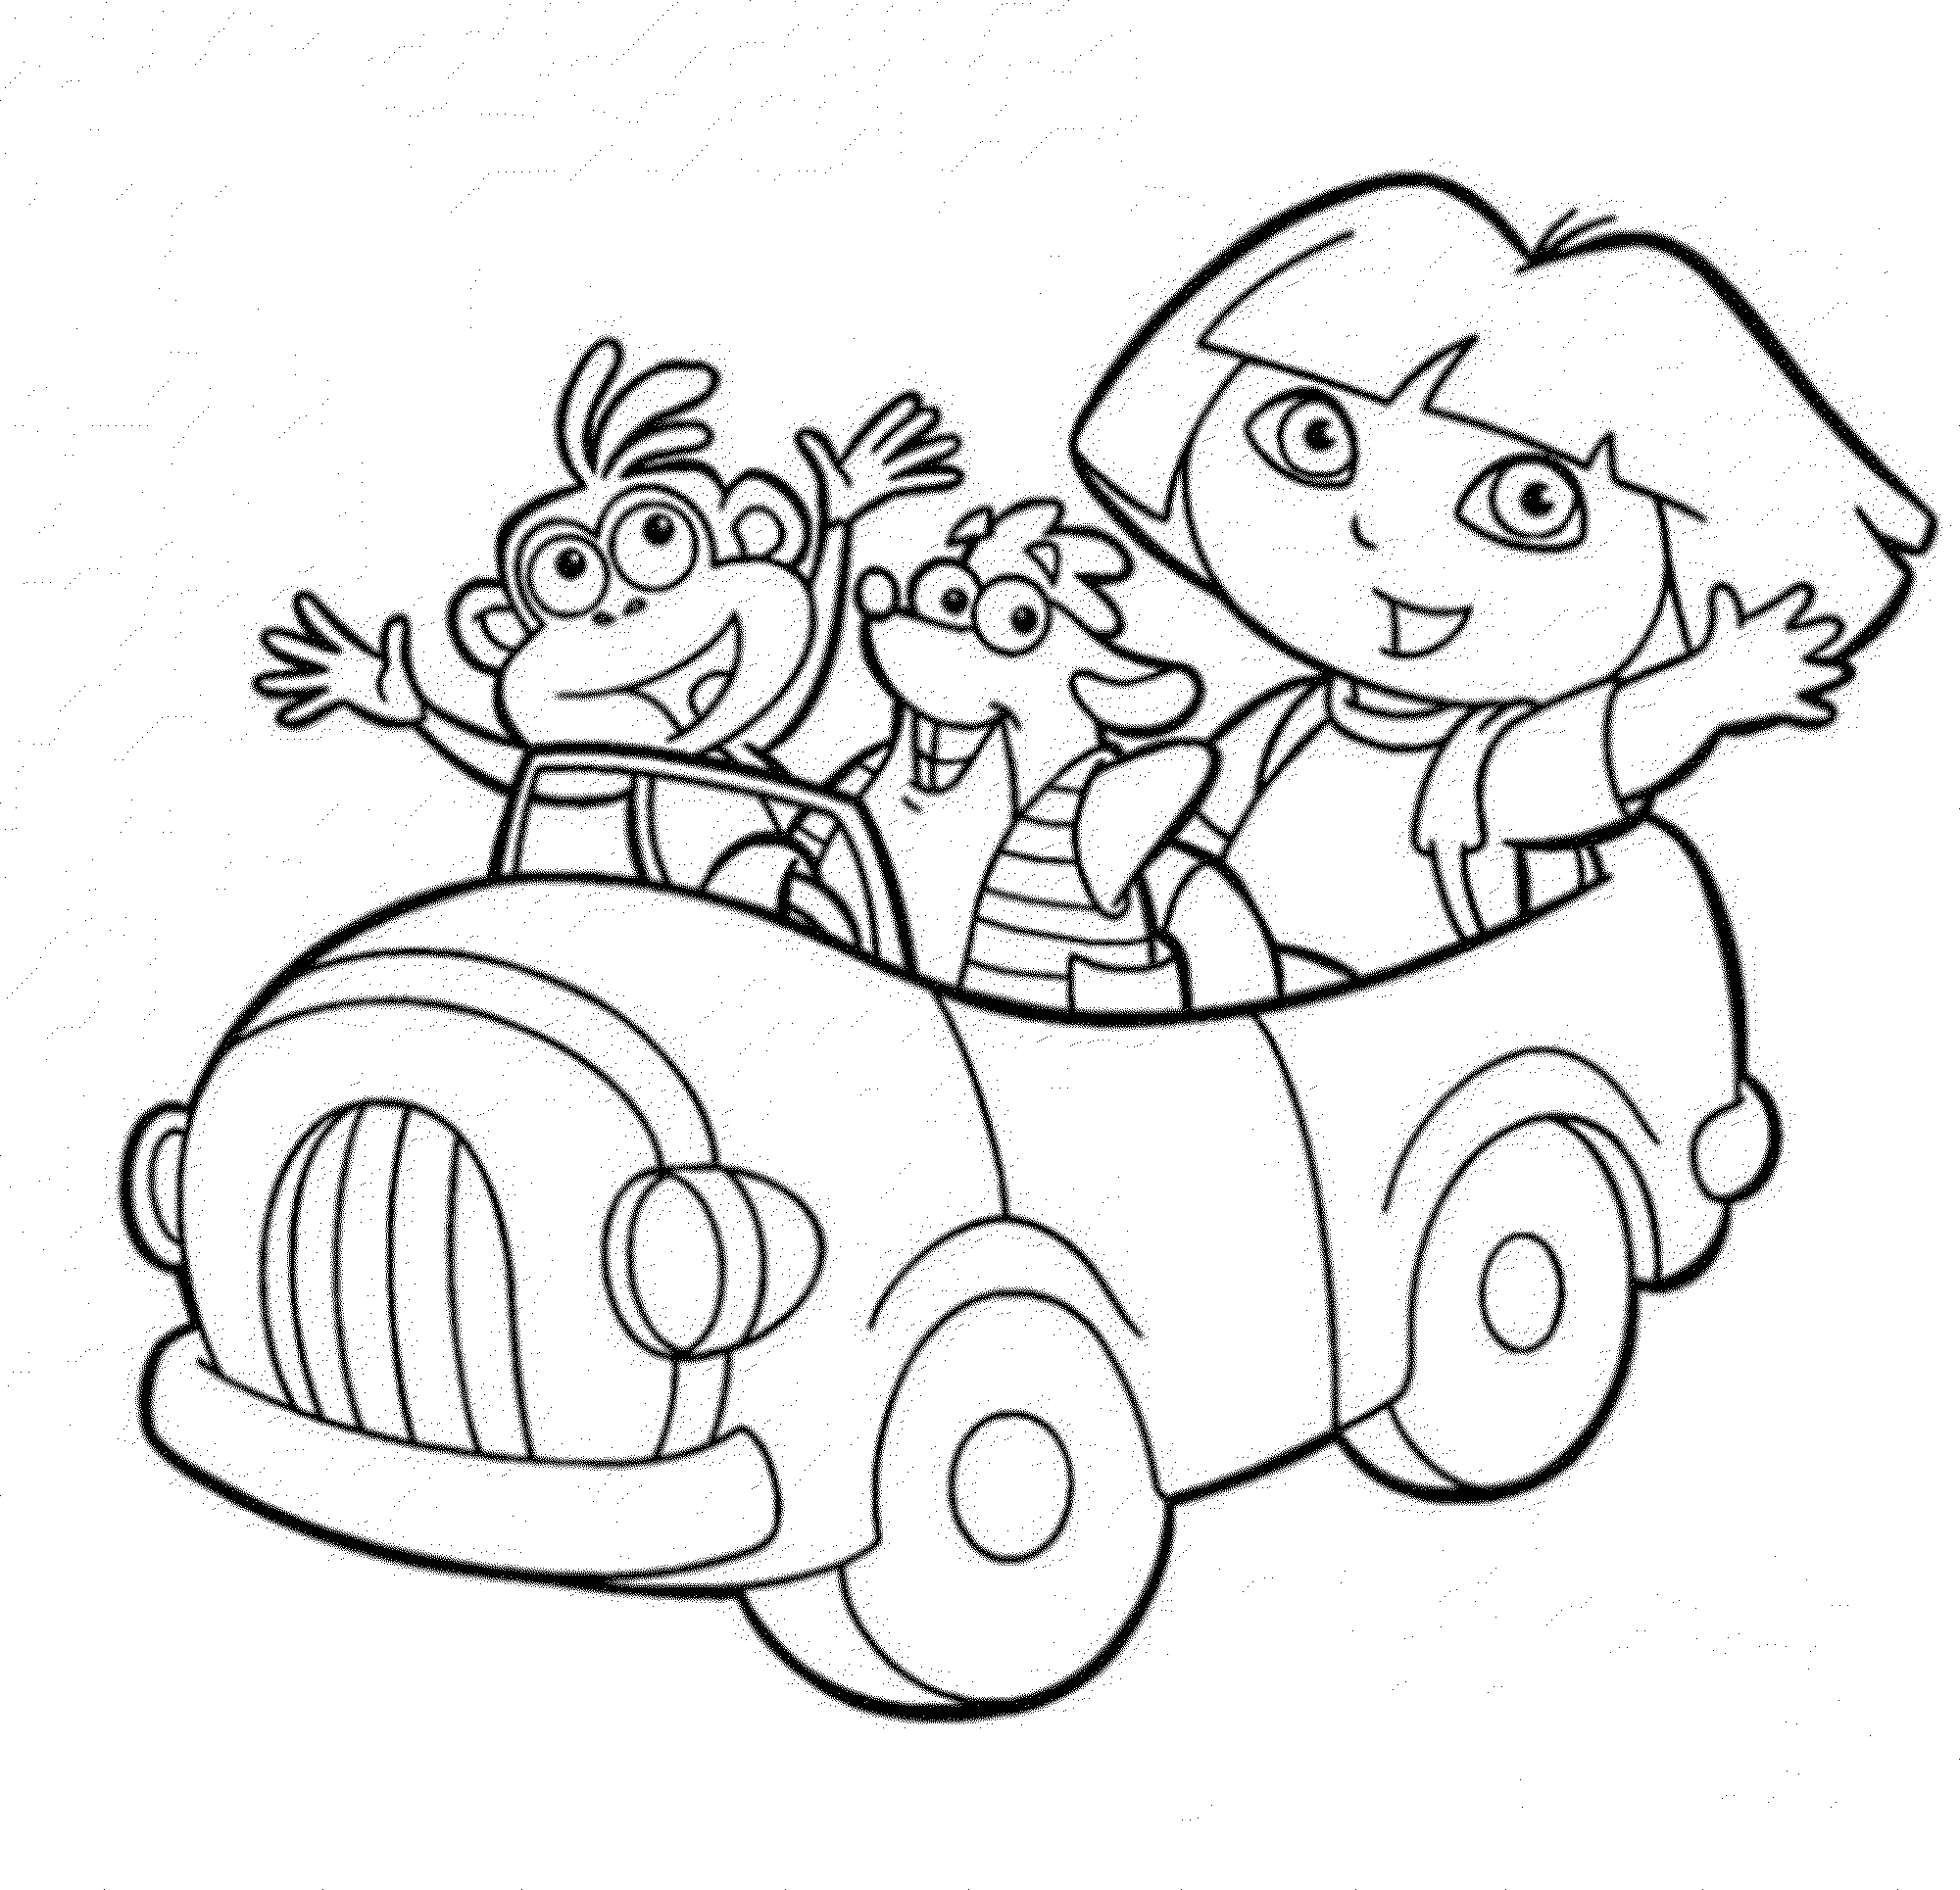 Dora The Explorer Coloring Pages To Print Car